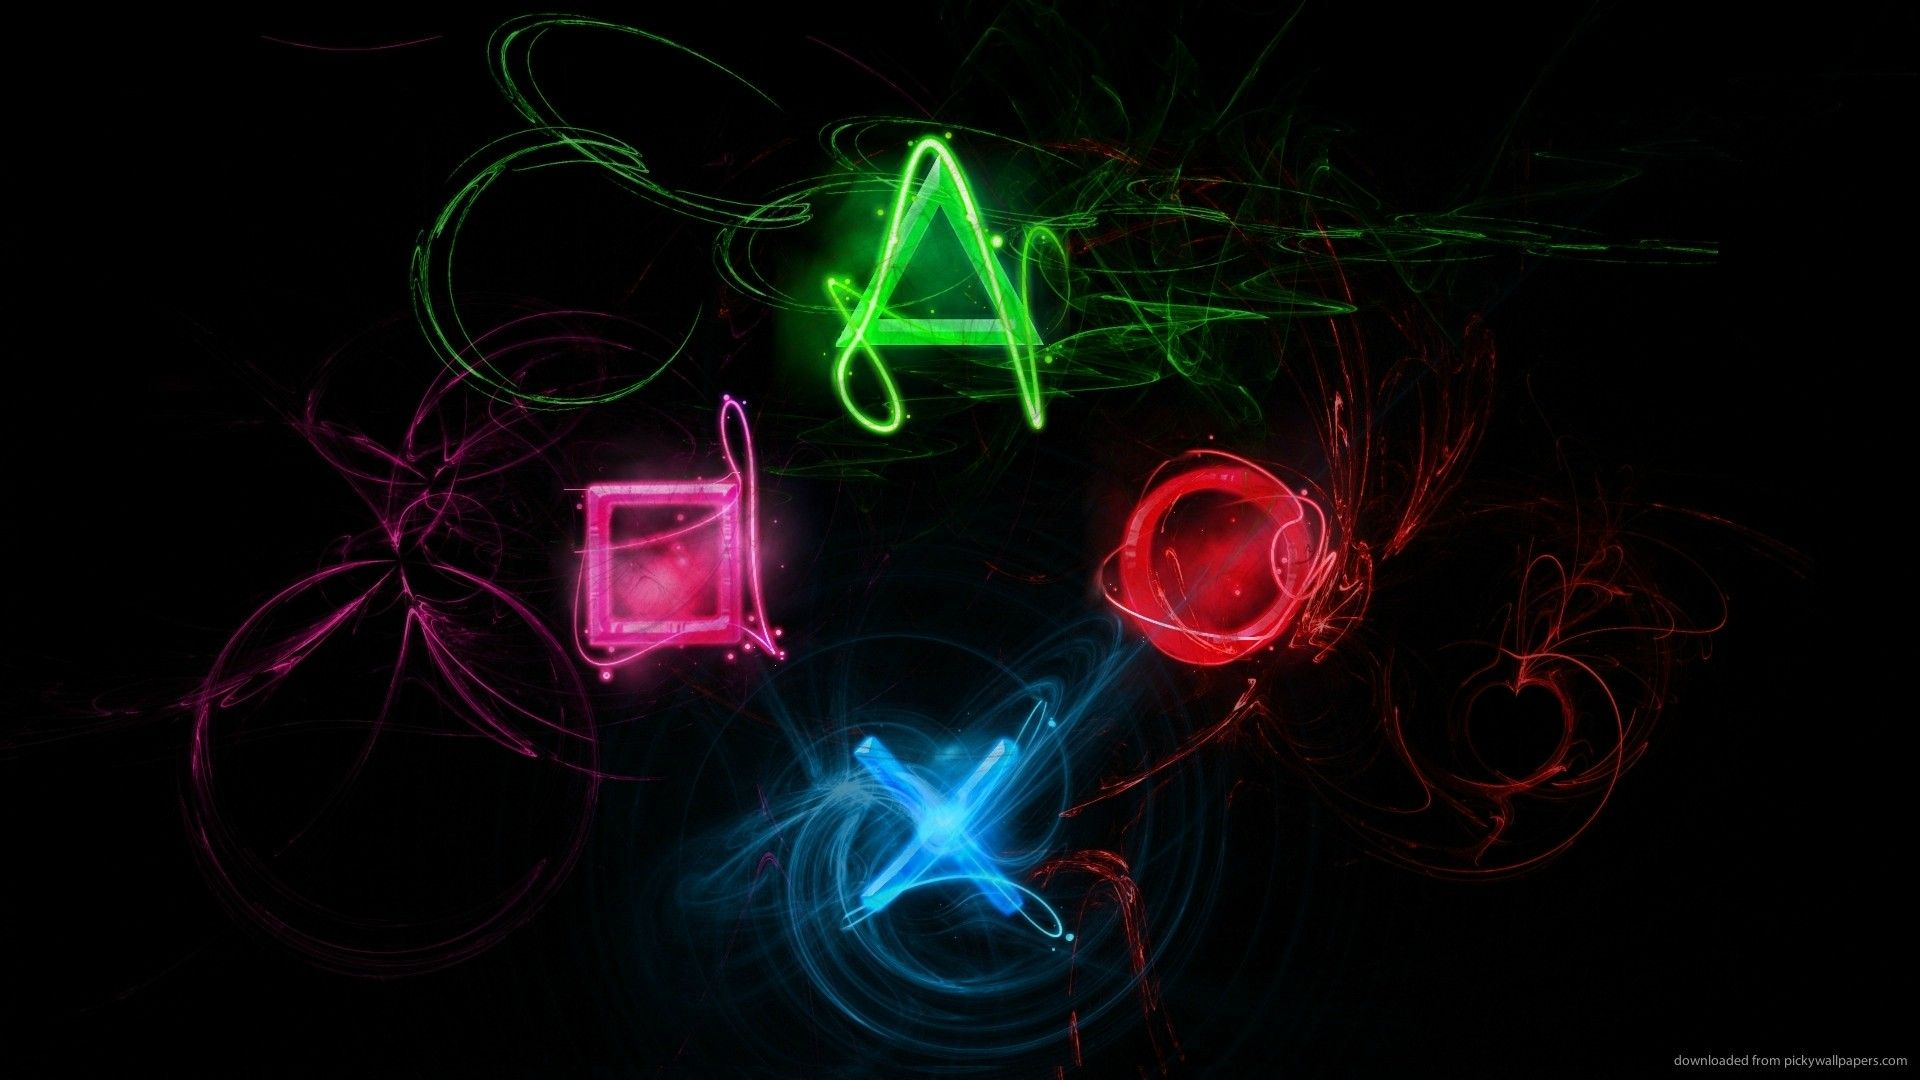 Gamer Thug Controller Hd Wallpapers: Playstation Controller Wallpaper